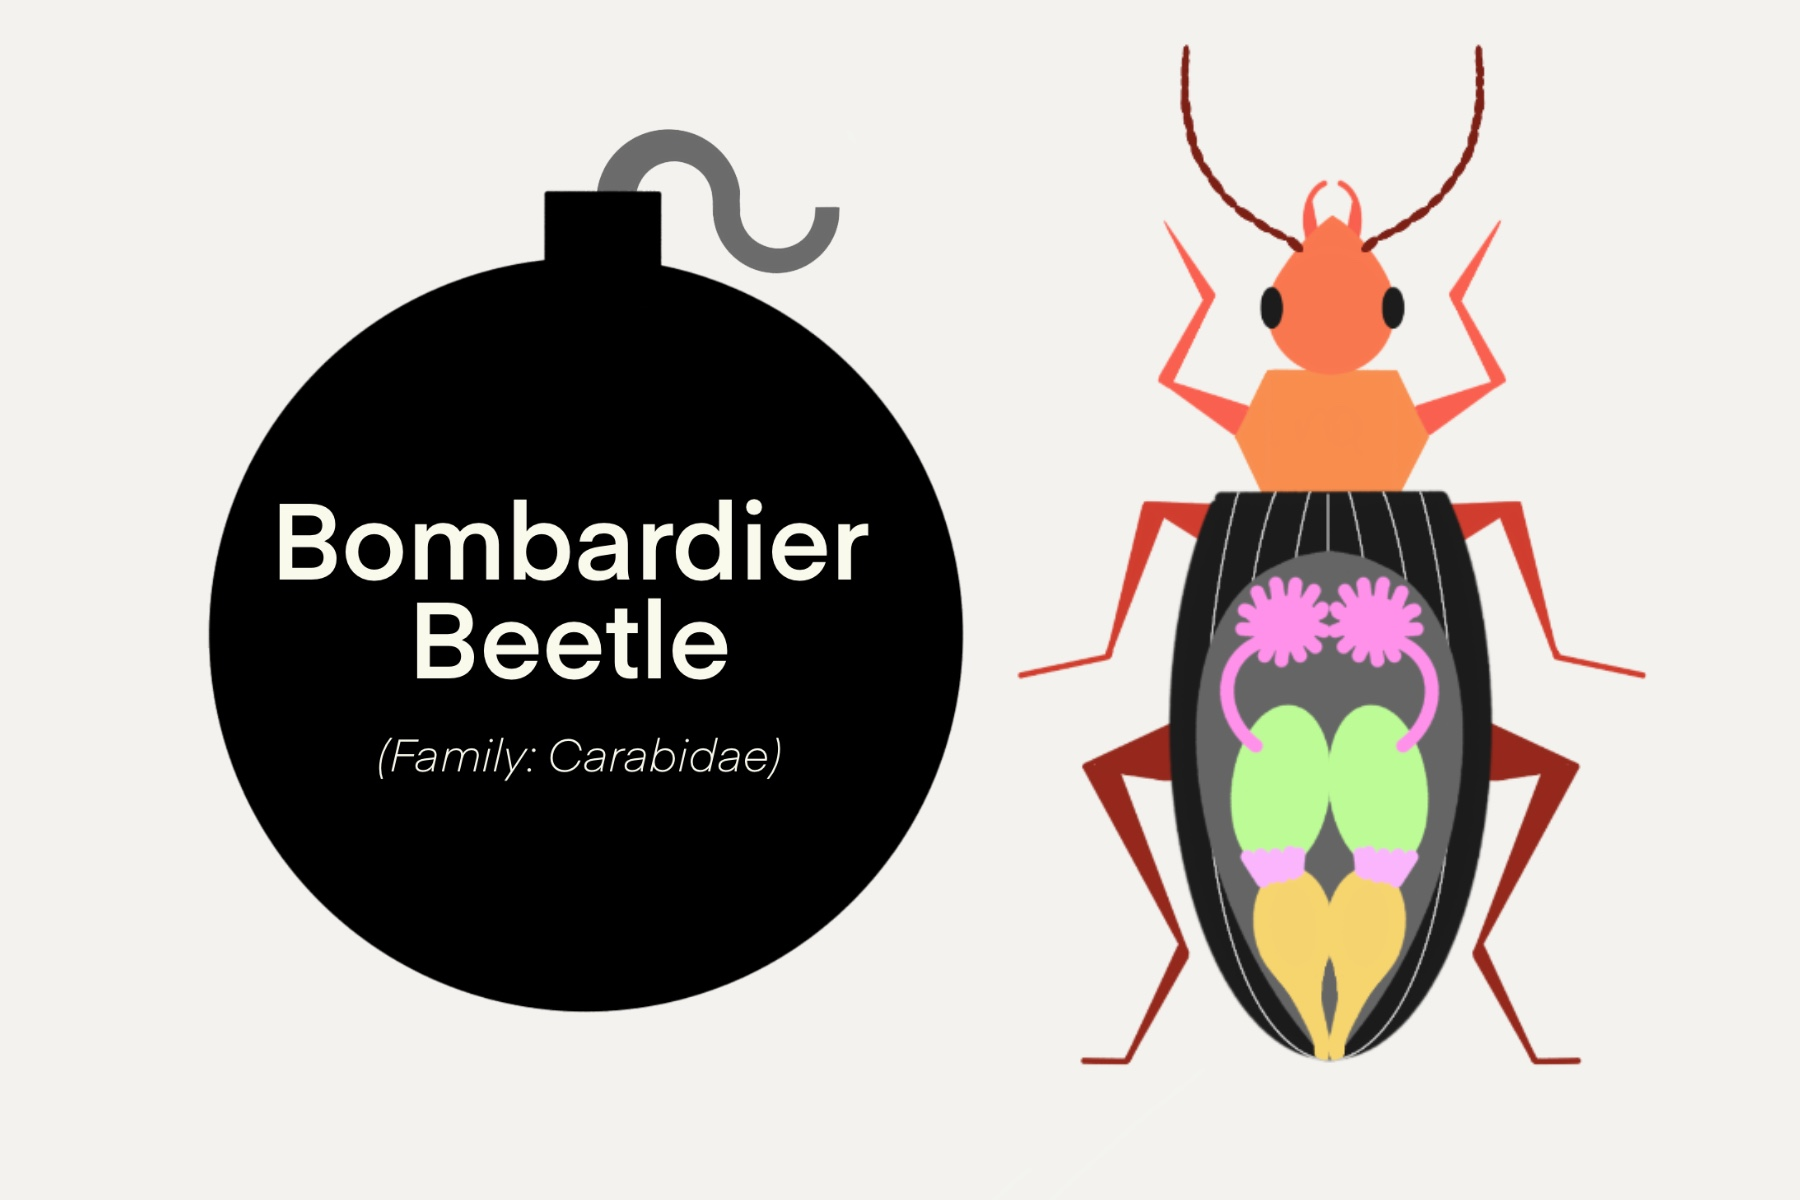 Bombardier beetle (family: carabidae) overlayed on a graphic design bomb next to a graphic design beetle.